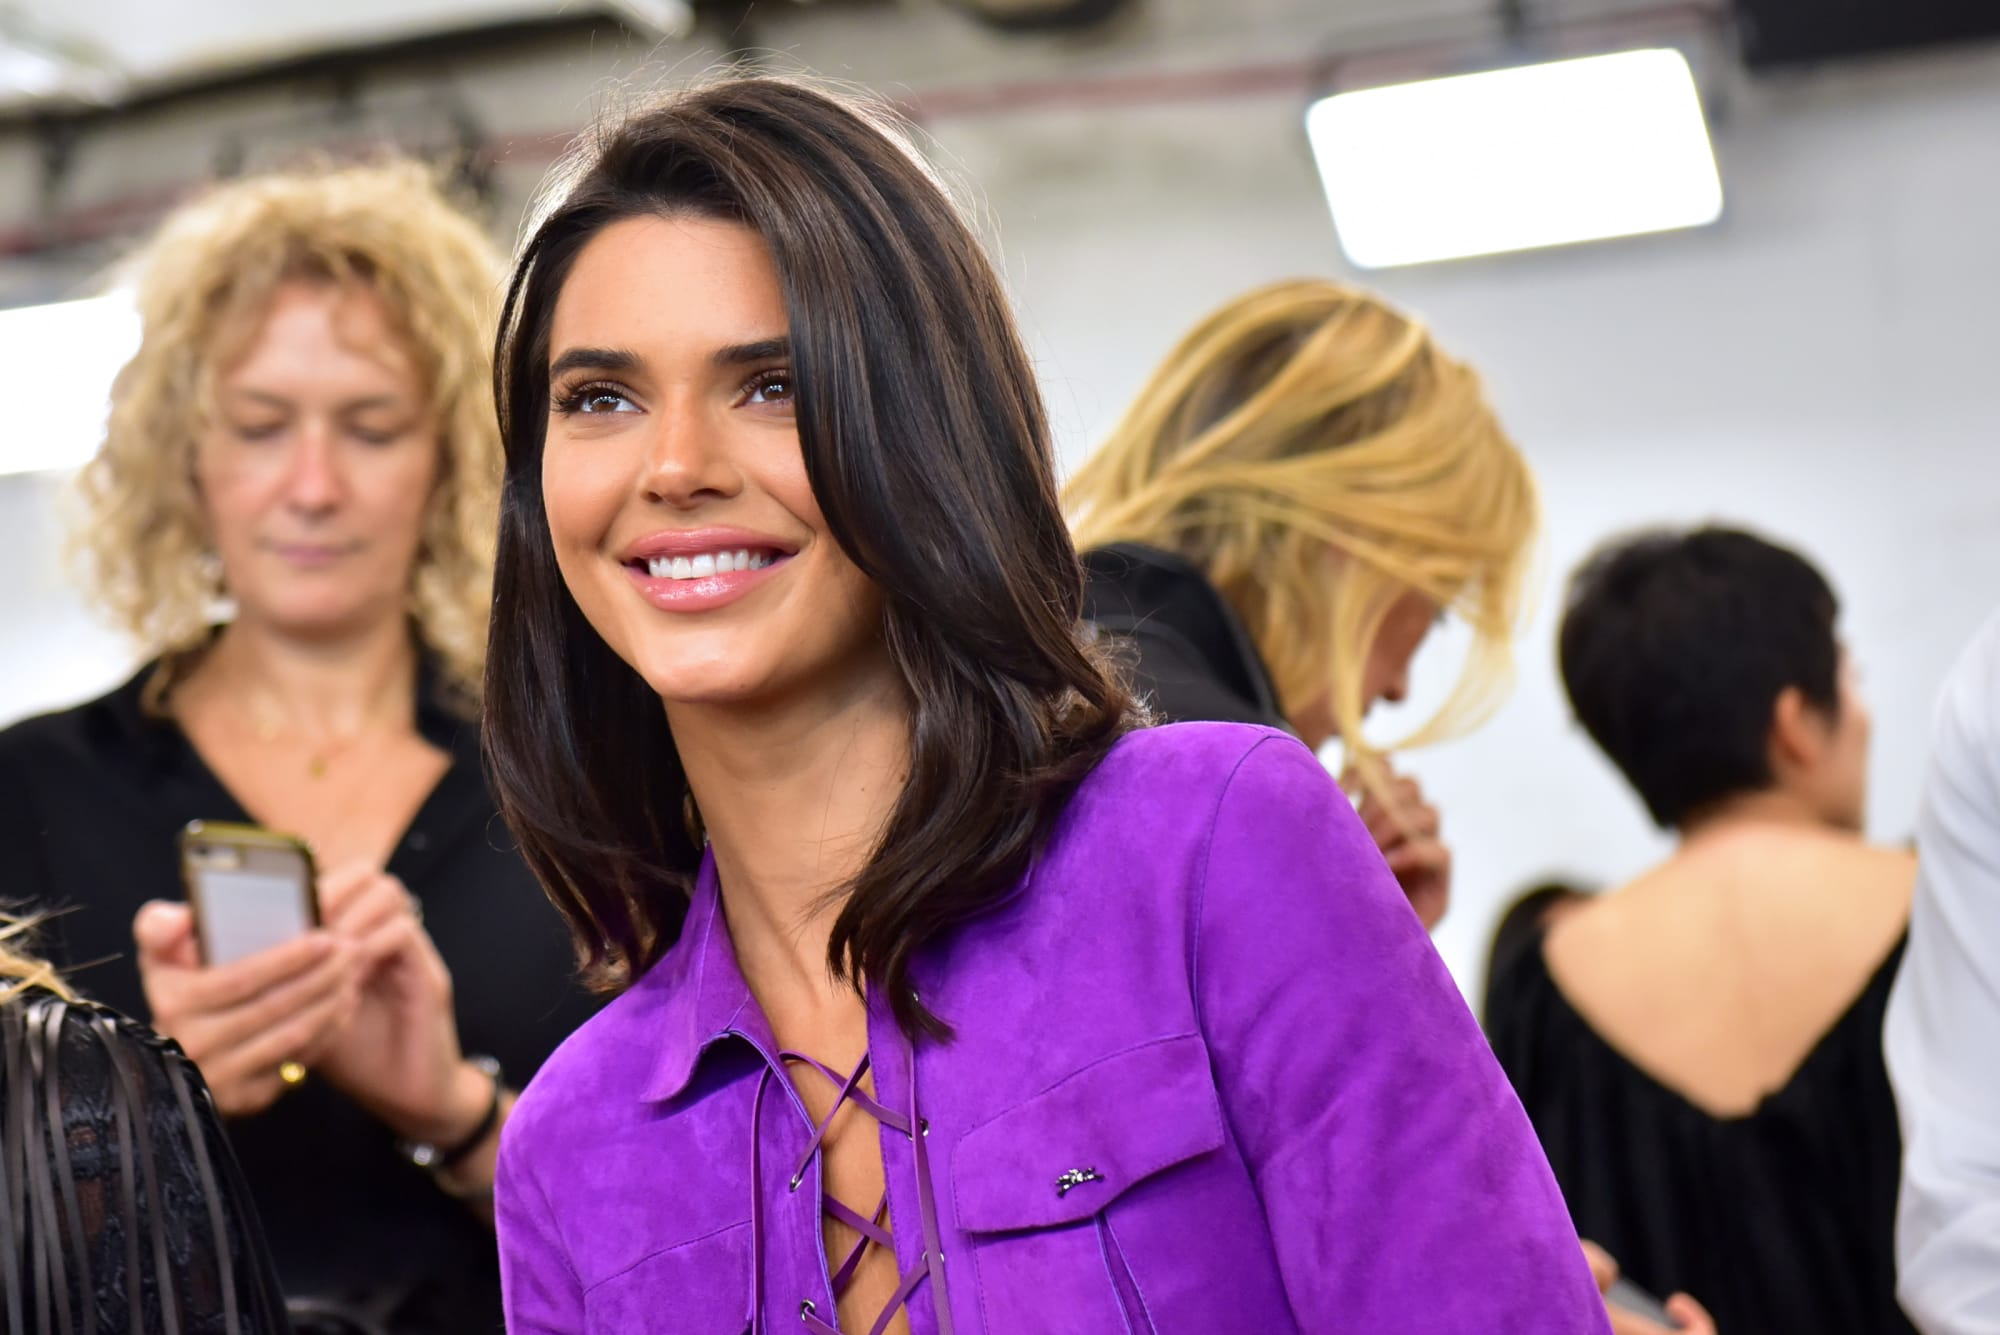 Kendall Jenner reveals her favorite quarantine pastimes and hobbies